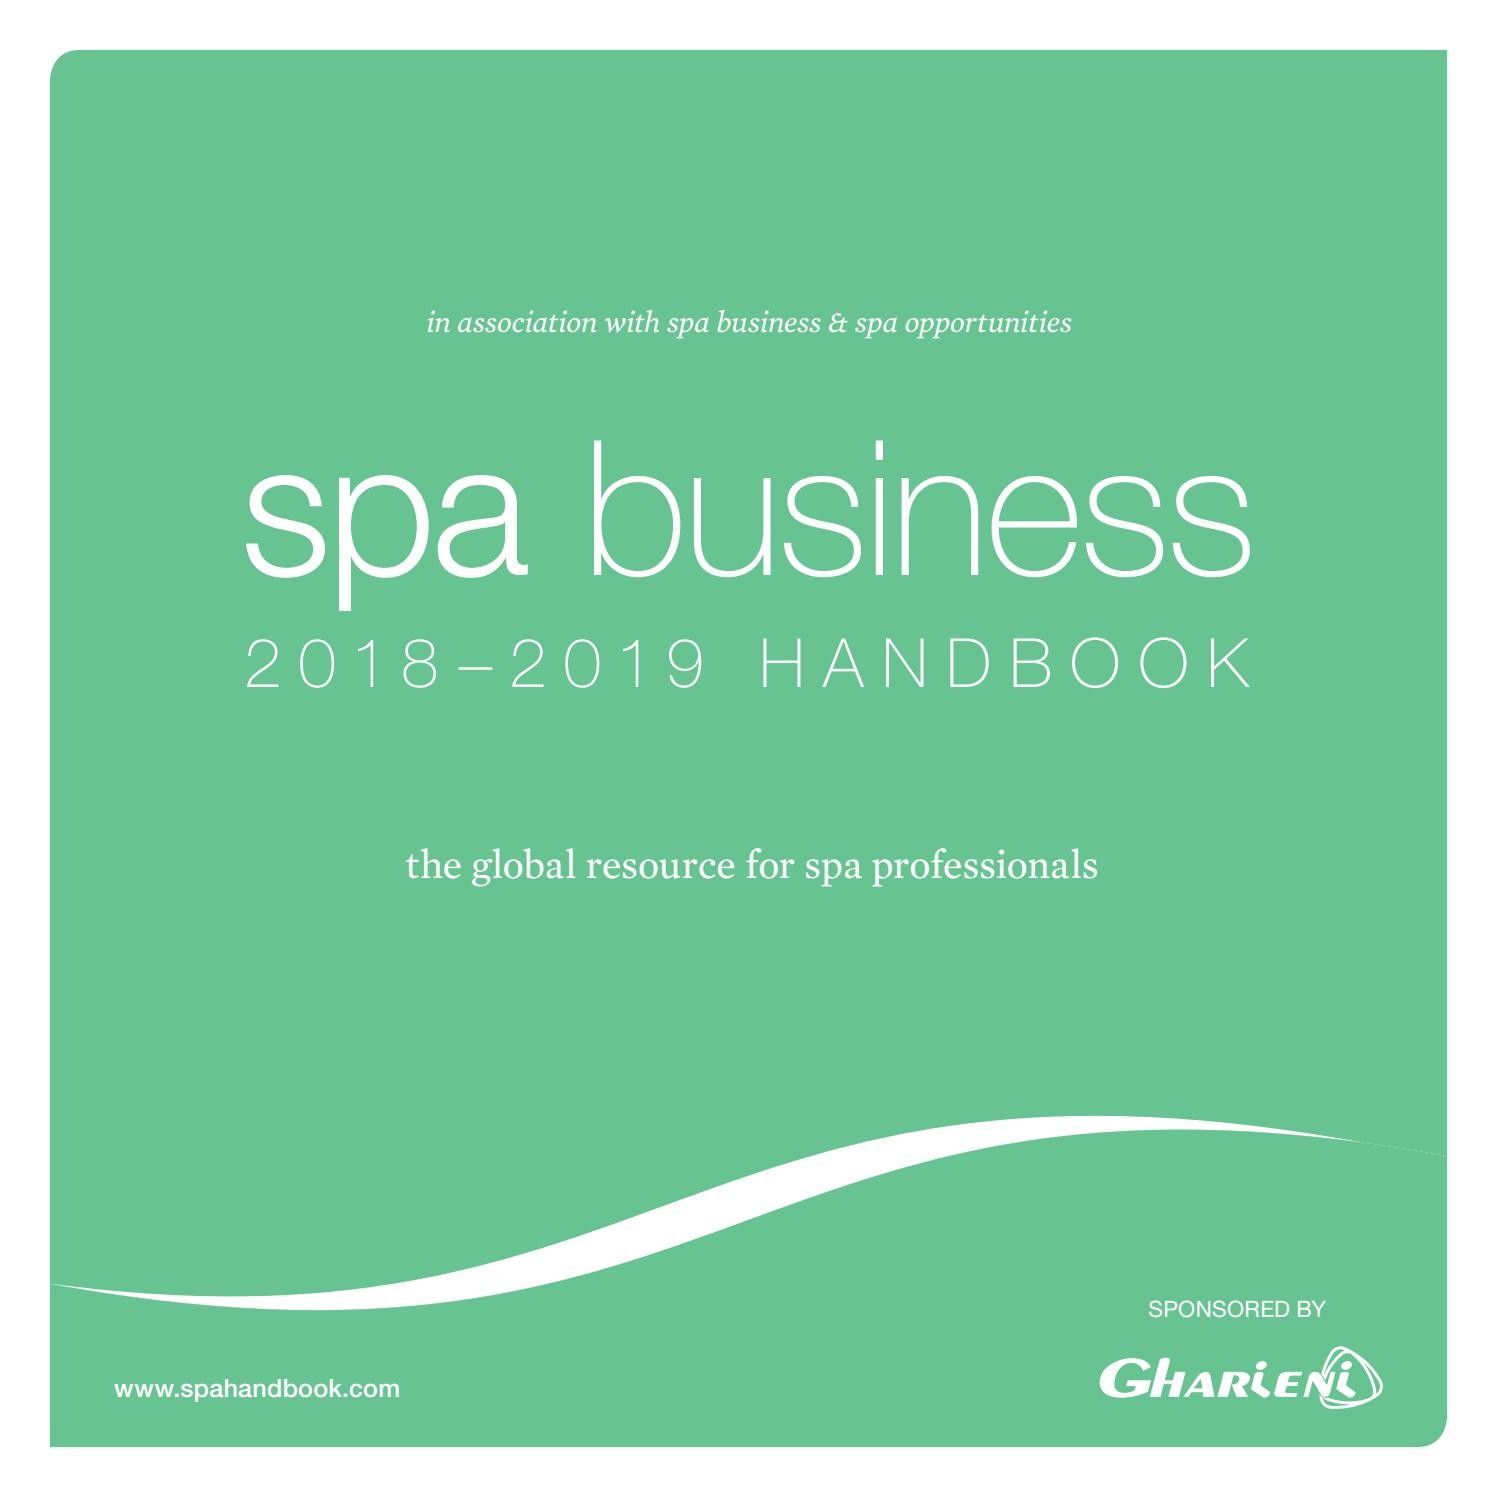 Calendar 2019 Excel Indonesia Más Caliente Spa Business Handbook 2018 2019 by Leisure Media issuu Of Calendar 2019 Excel Indonesia Mejores Y Más Novedosos Download Free Printable September 2018 Full Moon Calendar